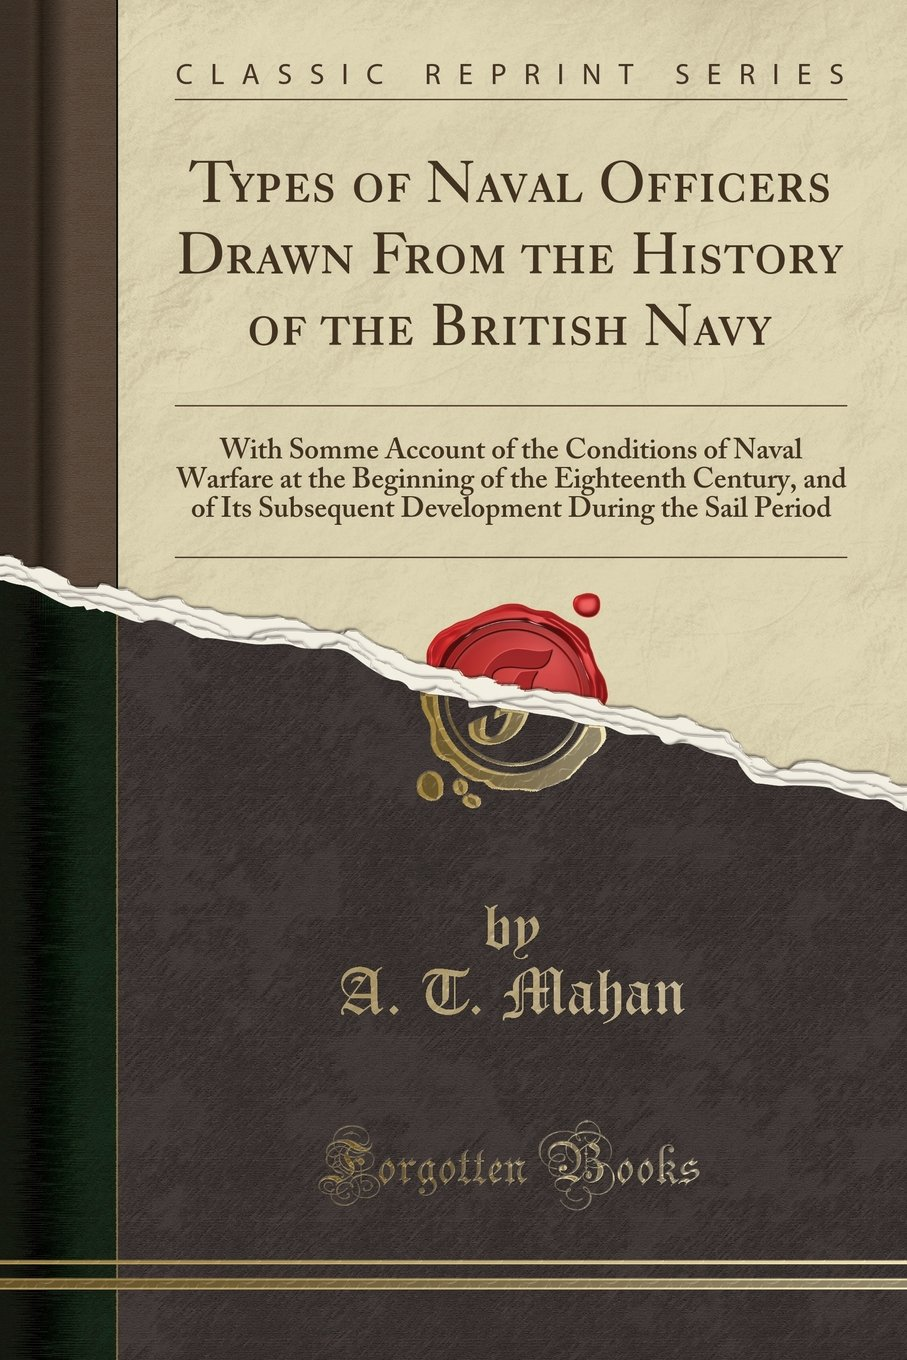 Types of Naval Officers Drawn From the History of the British Navy: With Somme Account of the Conditions of Naval Warfare at the Beginning of the ... During the Sail Period (Classic Reprint) ebook